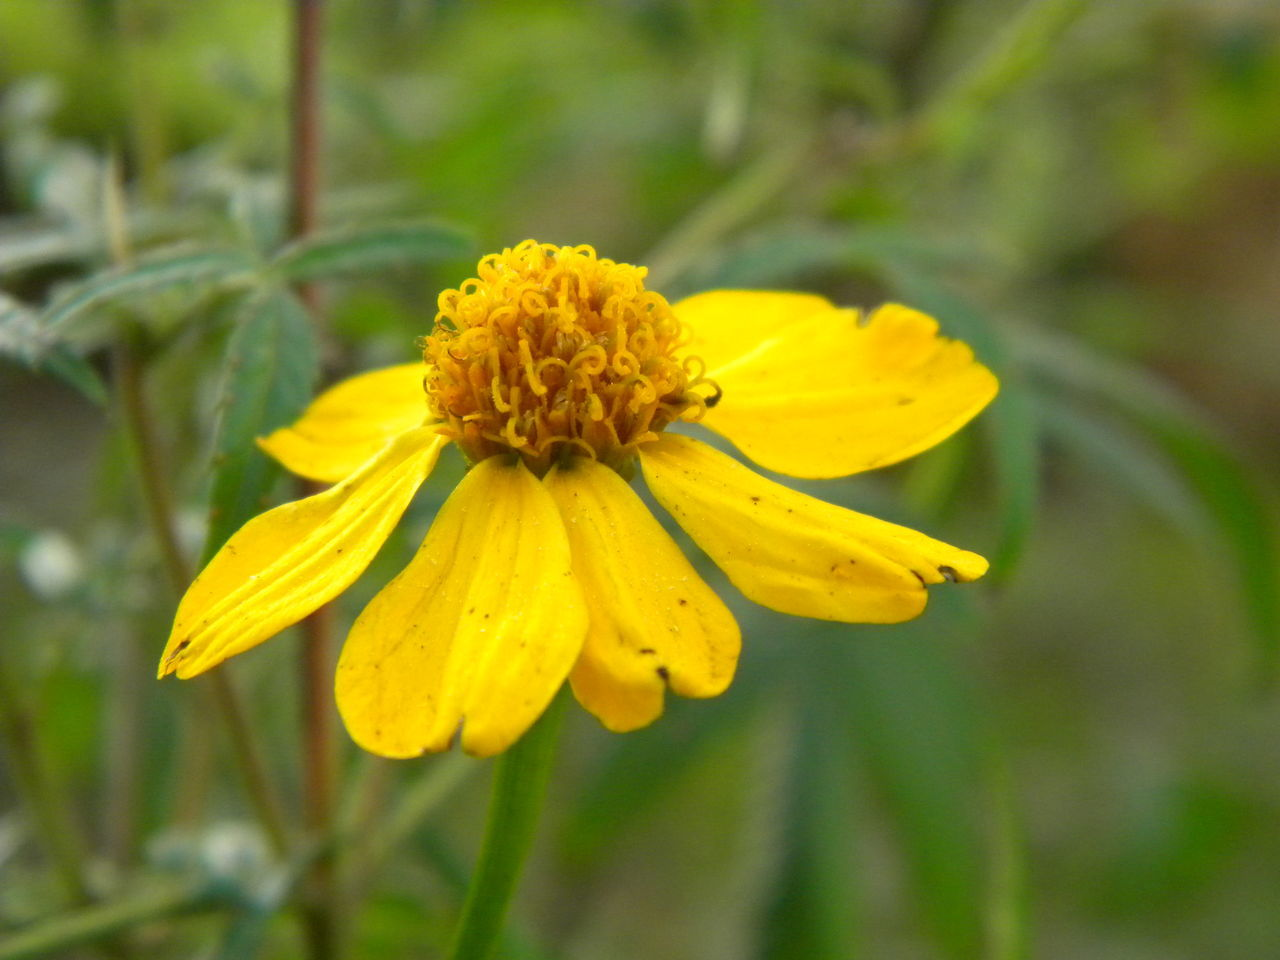 flower, yellow, petal, growth, nature, fragility, plant, freshness, beauty in nature, flower head, blooming, no people, outdoors, close-up, day